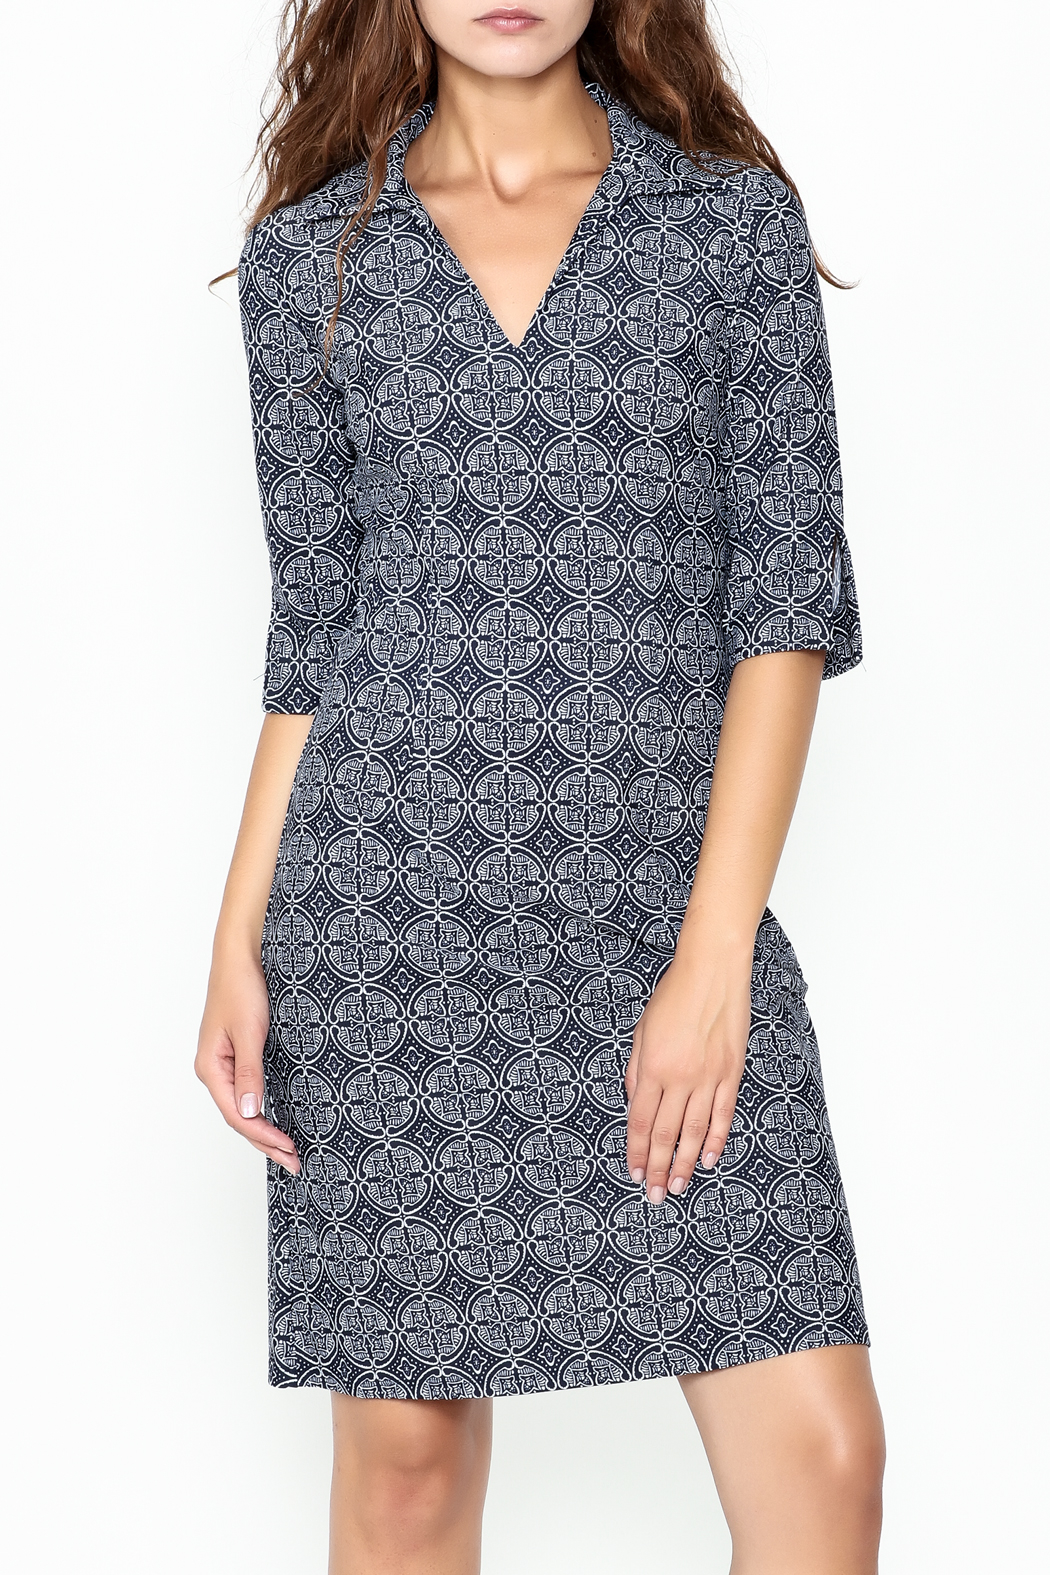 Jude Connally Megan Tunic Dress - Main Image